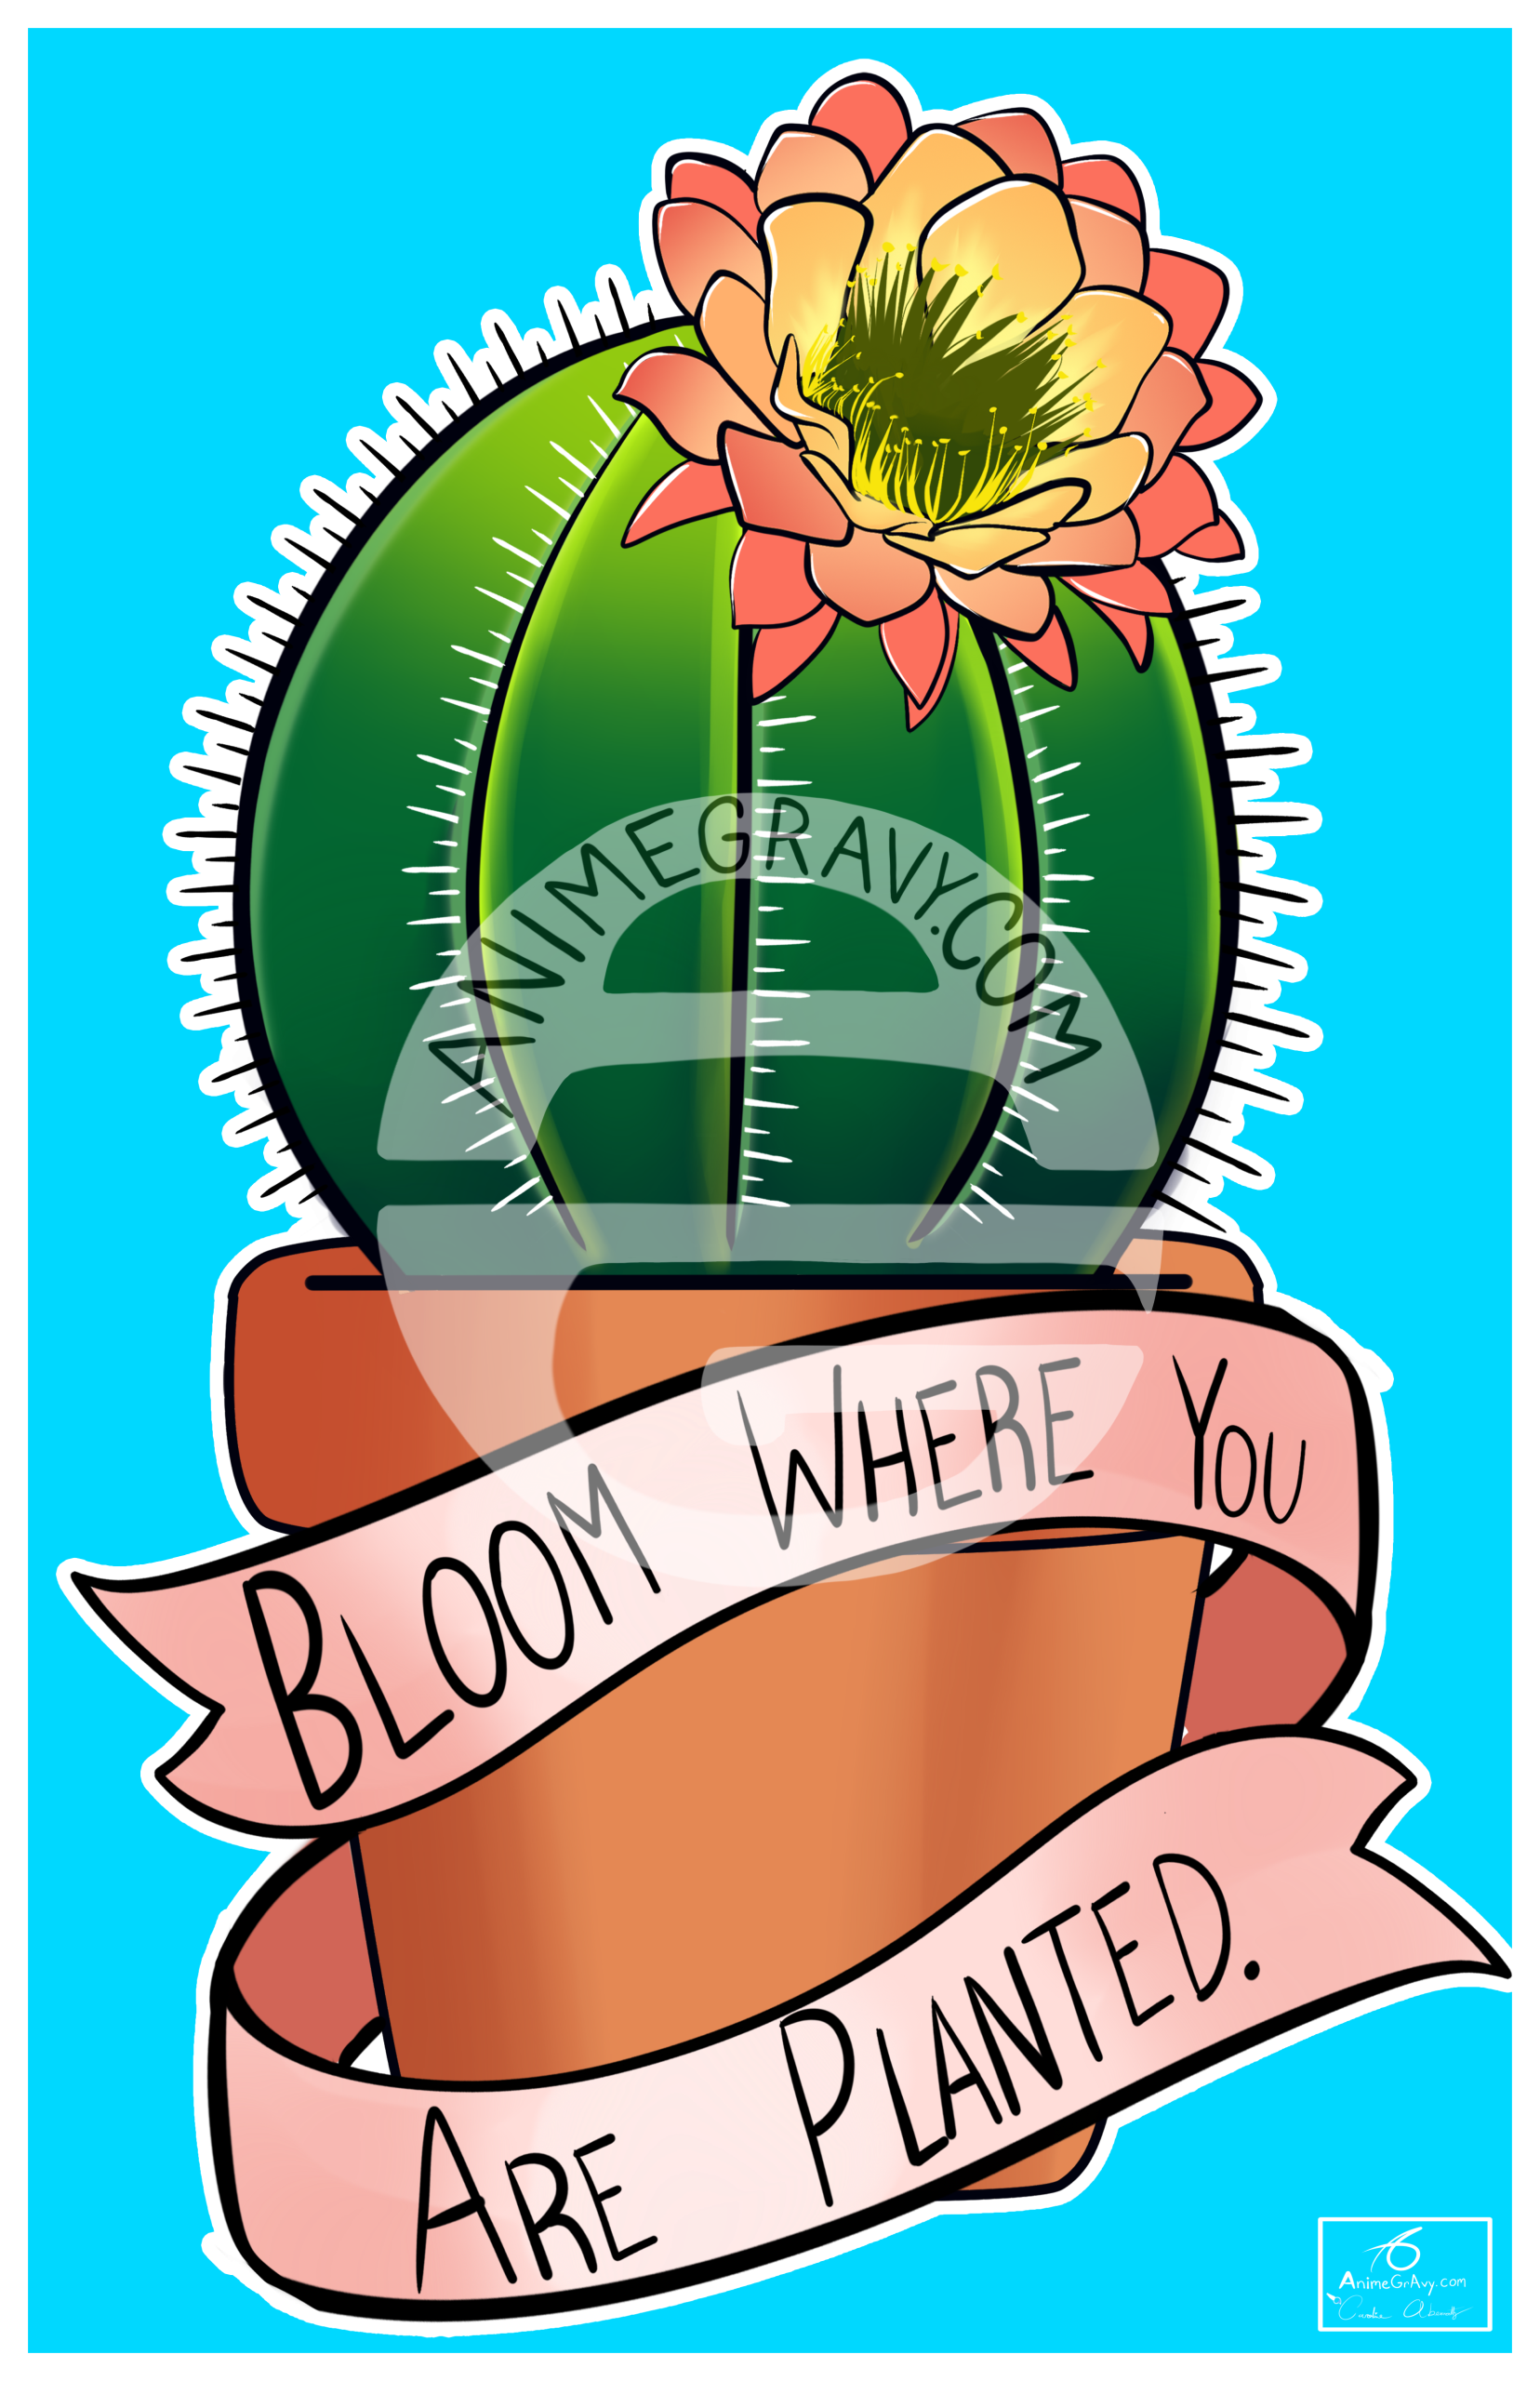 Clipart of bloom where you are planted picture black and white library Bloom Where You Are Planted picture black and white library